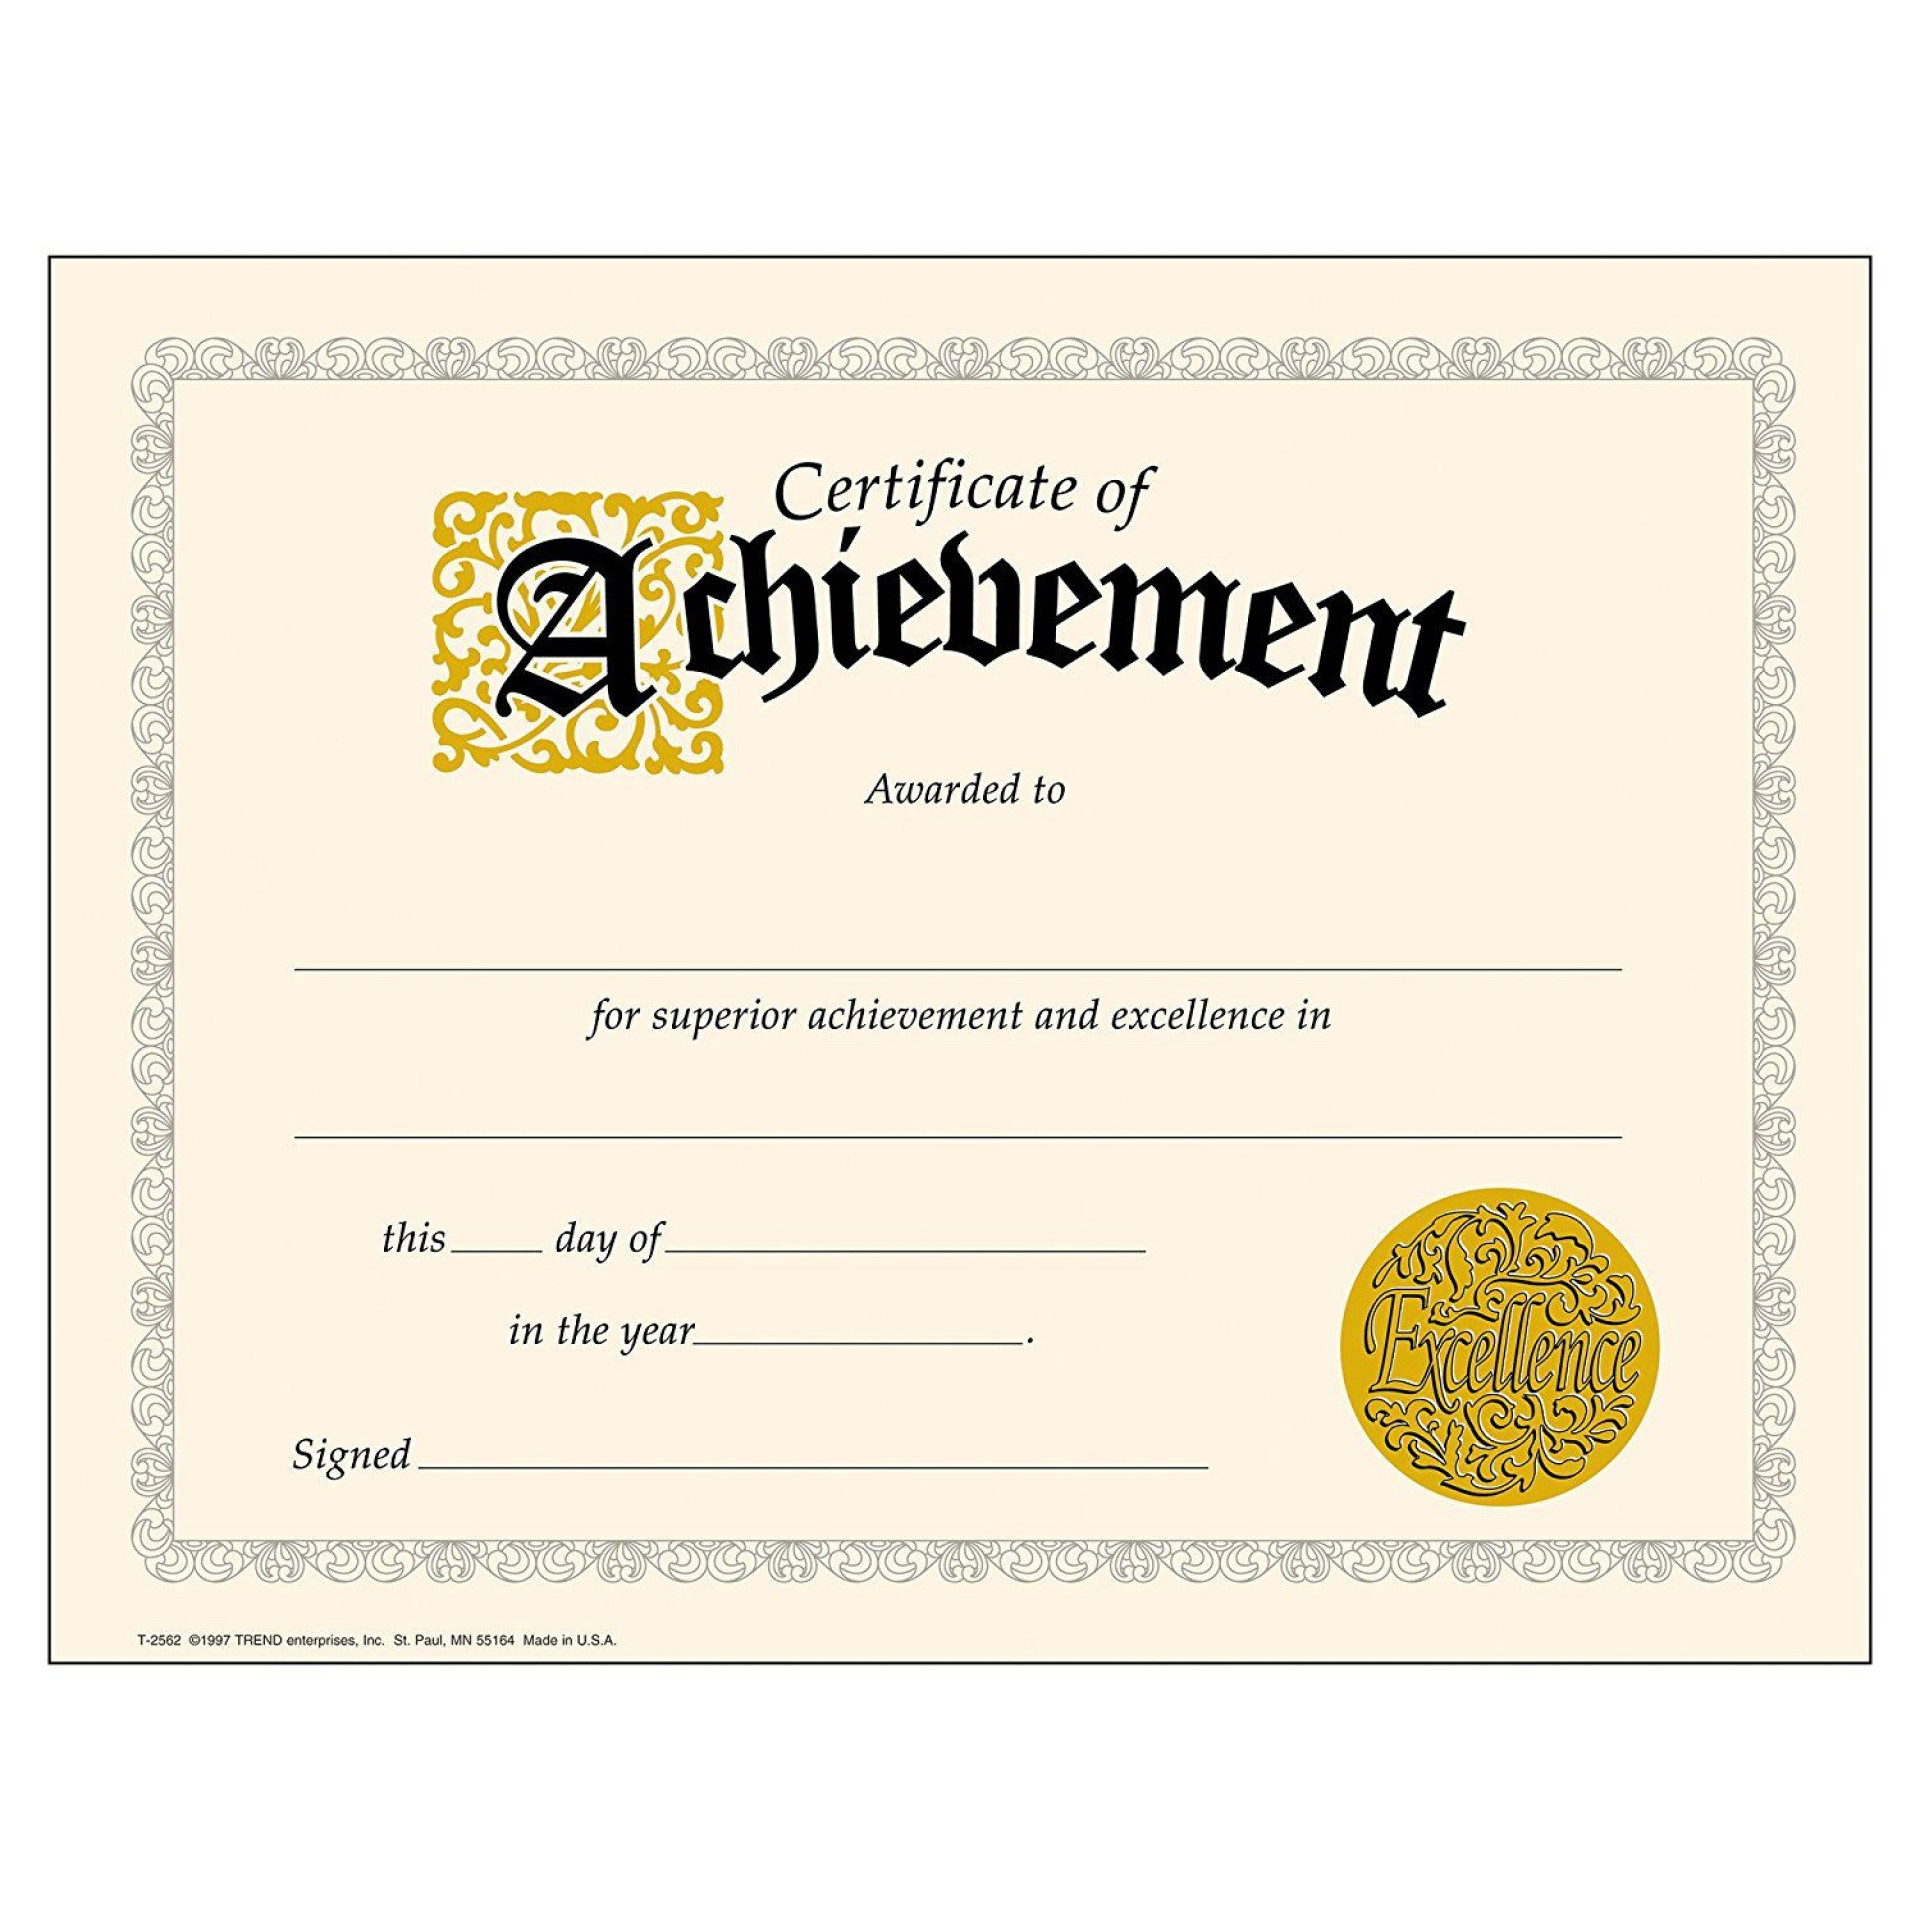 010 Awesome Certificate Of Achievement Template Free High Resolution  Award Download Word1920